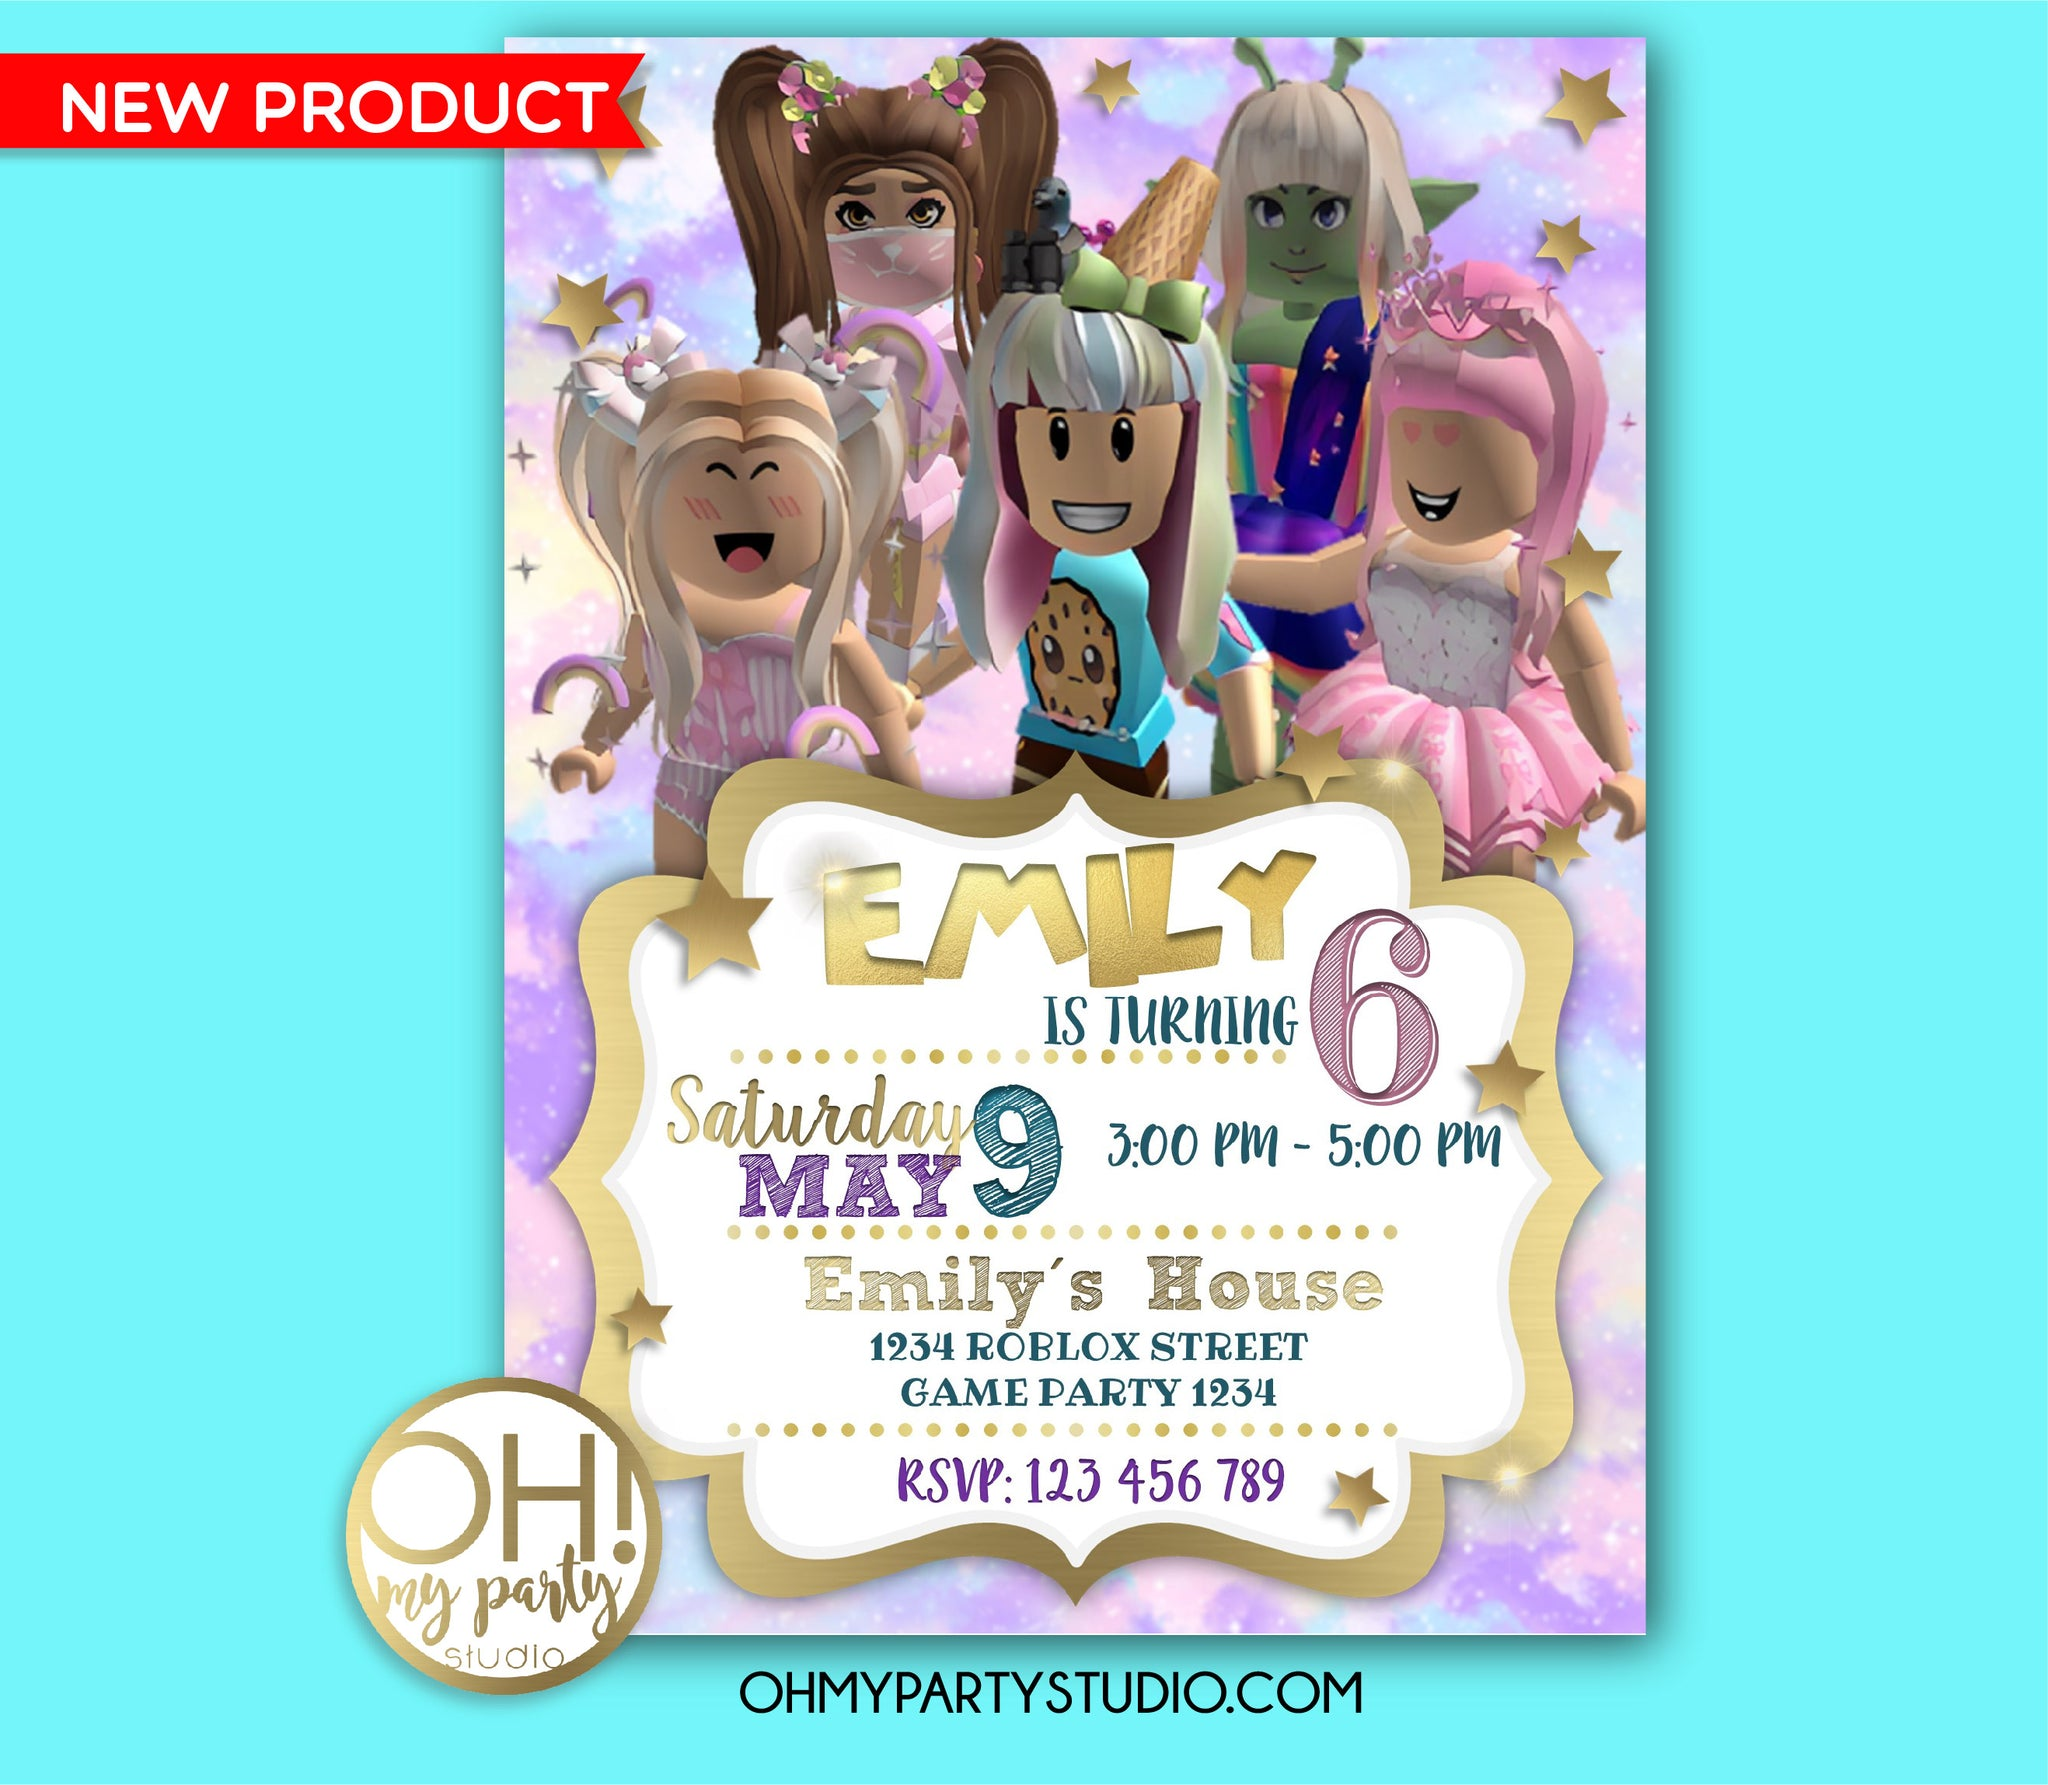 ROBLOX BIRTHDAY PARTY INVITATION, ROBLOX INVITATION GIRL, ROBLOX BIRTHDAY INVITATION, ROBLOX PARTY INVITATION